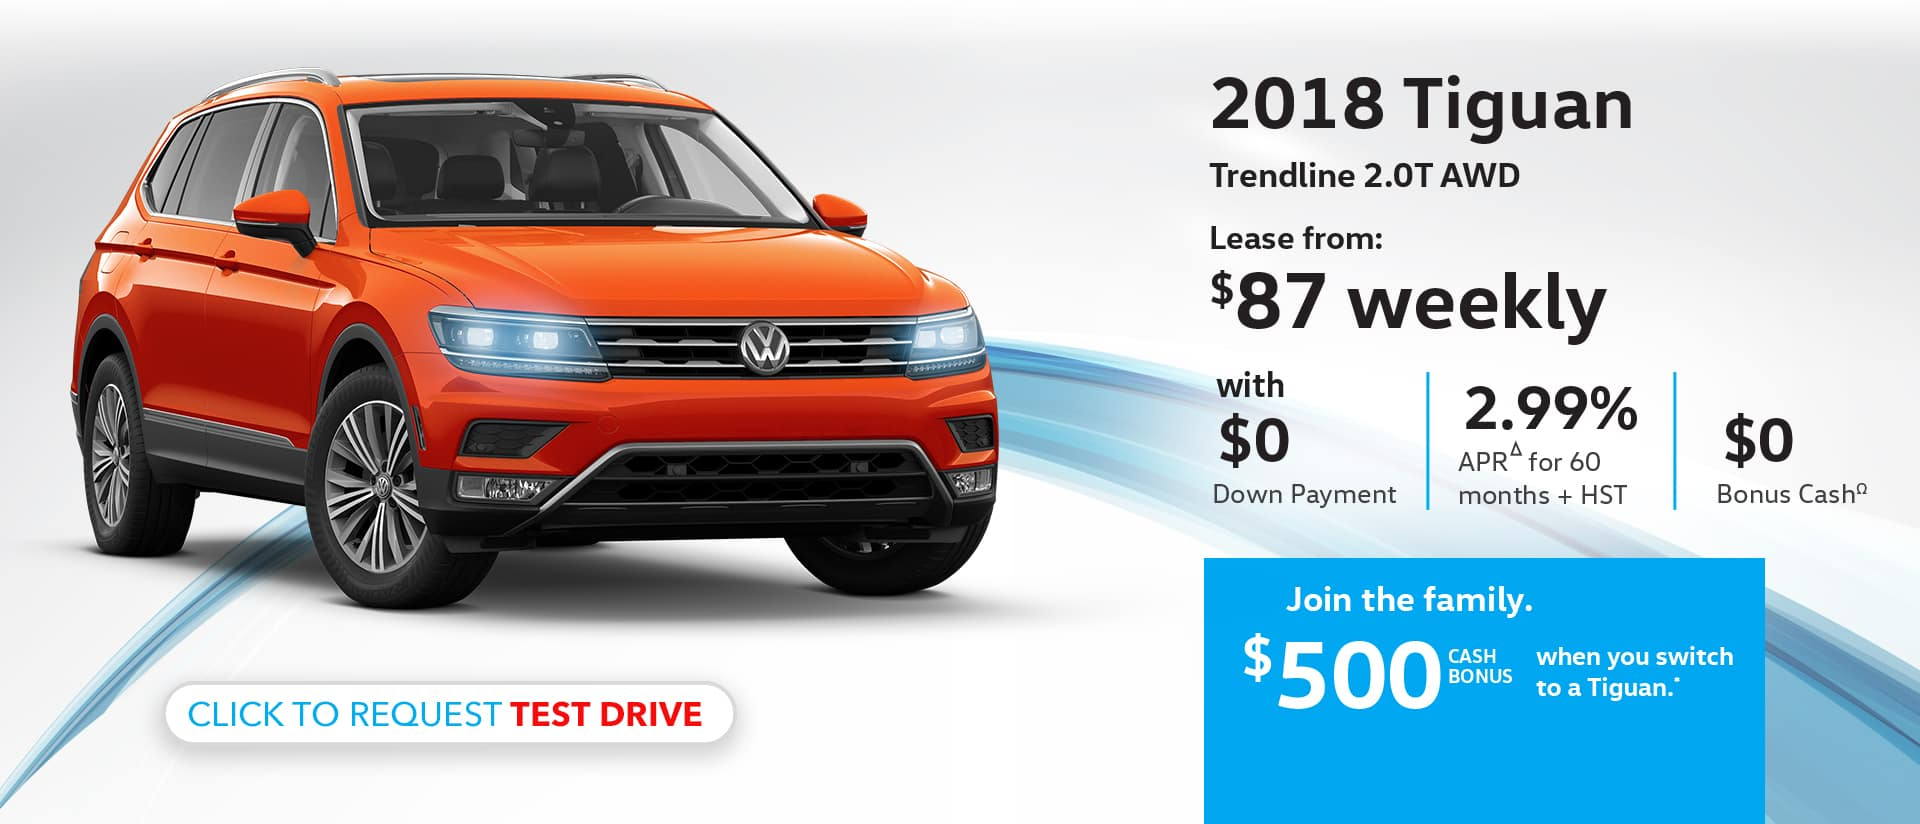 Maple Volkswagen 2018 Tiguan